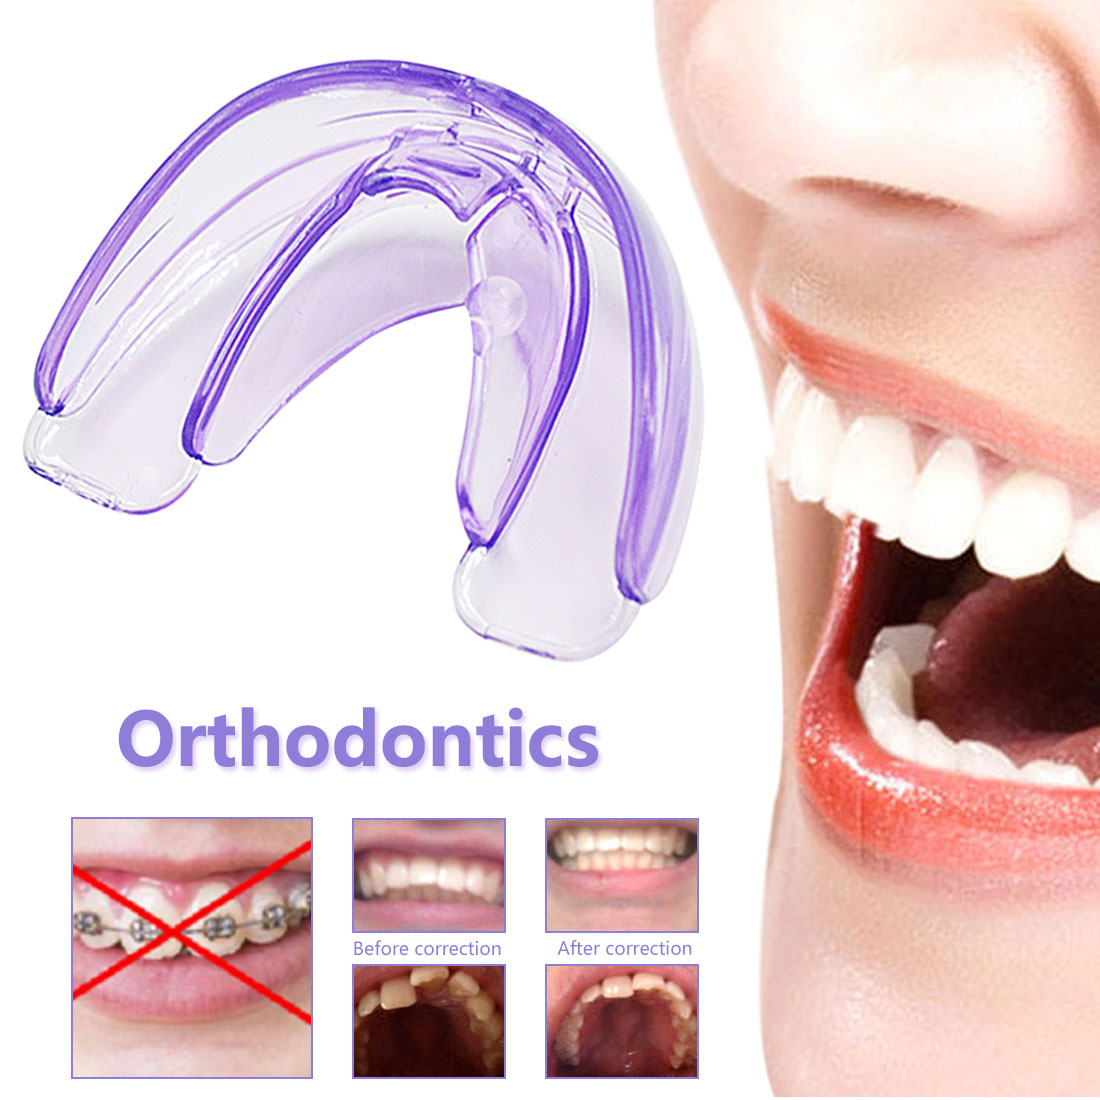 Correction Bracket Silicone Trainer Dental Fixture Oral Hygiene Orthodontics Transparent Orthodontic Care Teeth Braces